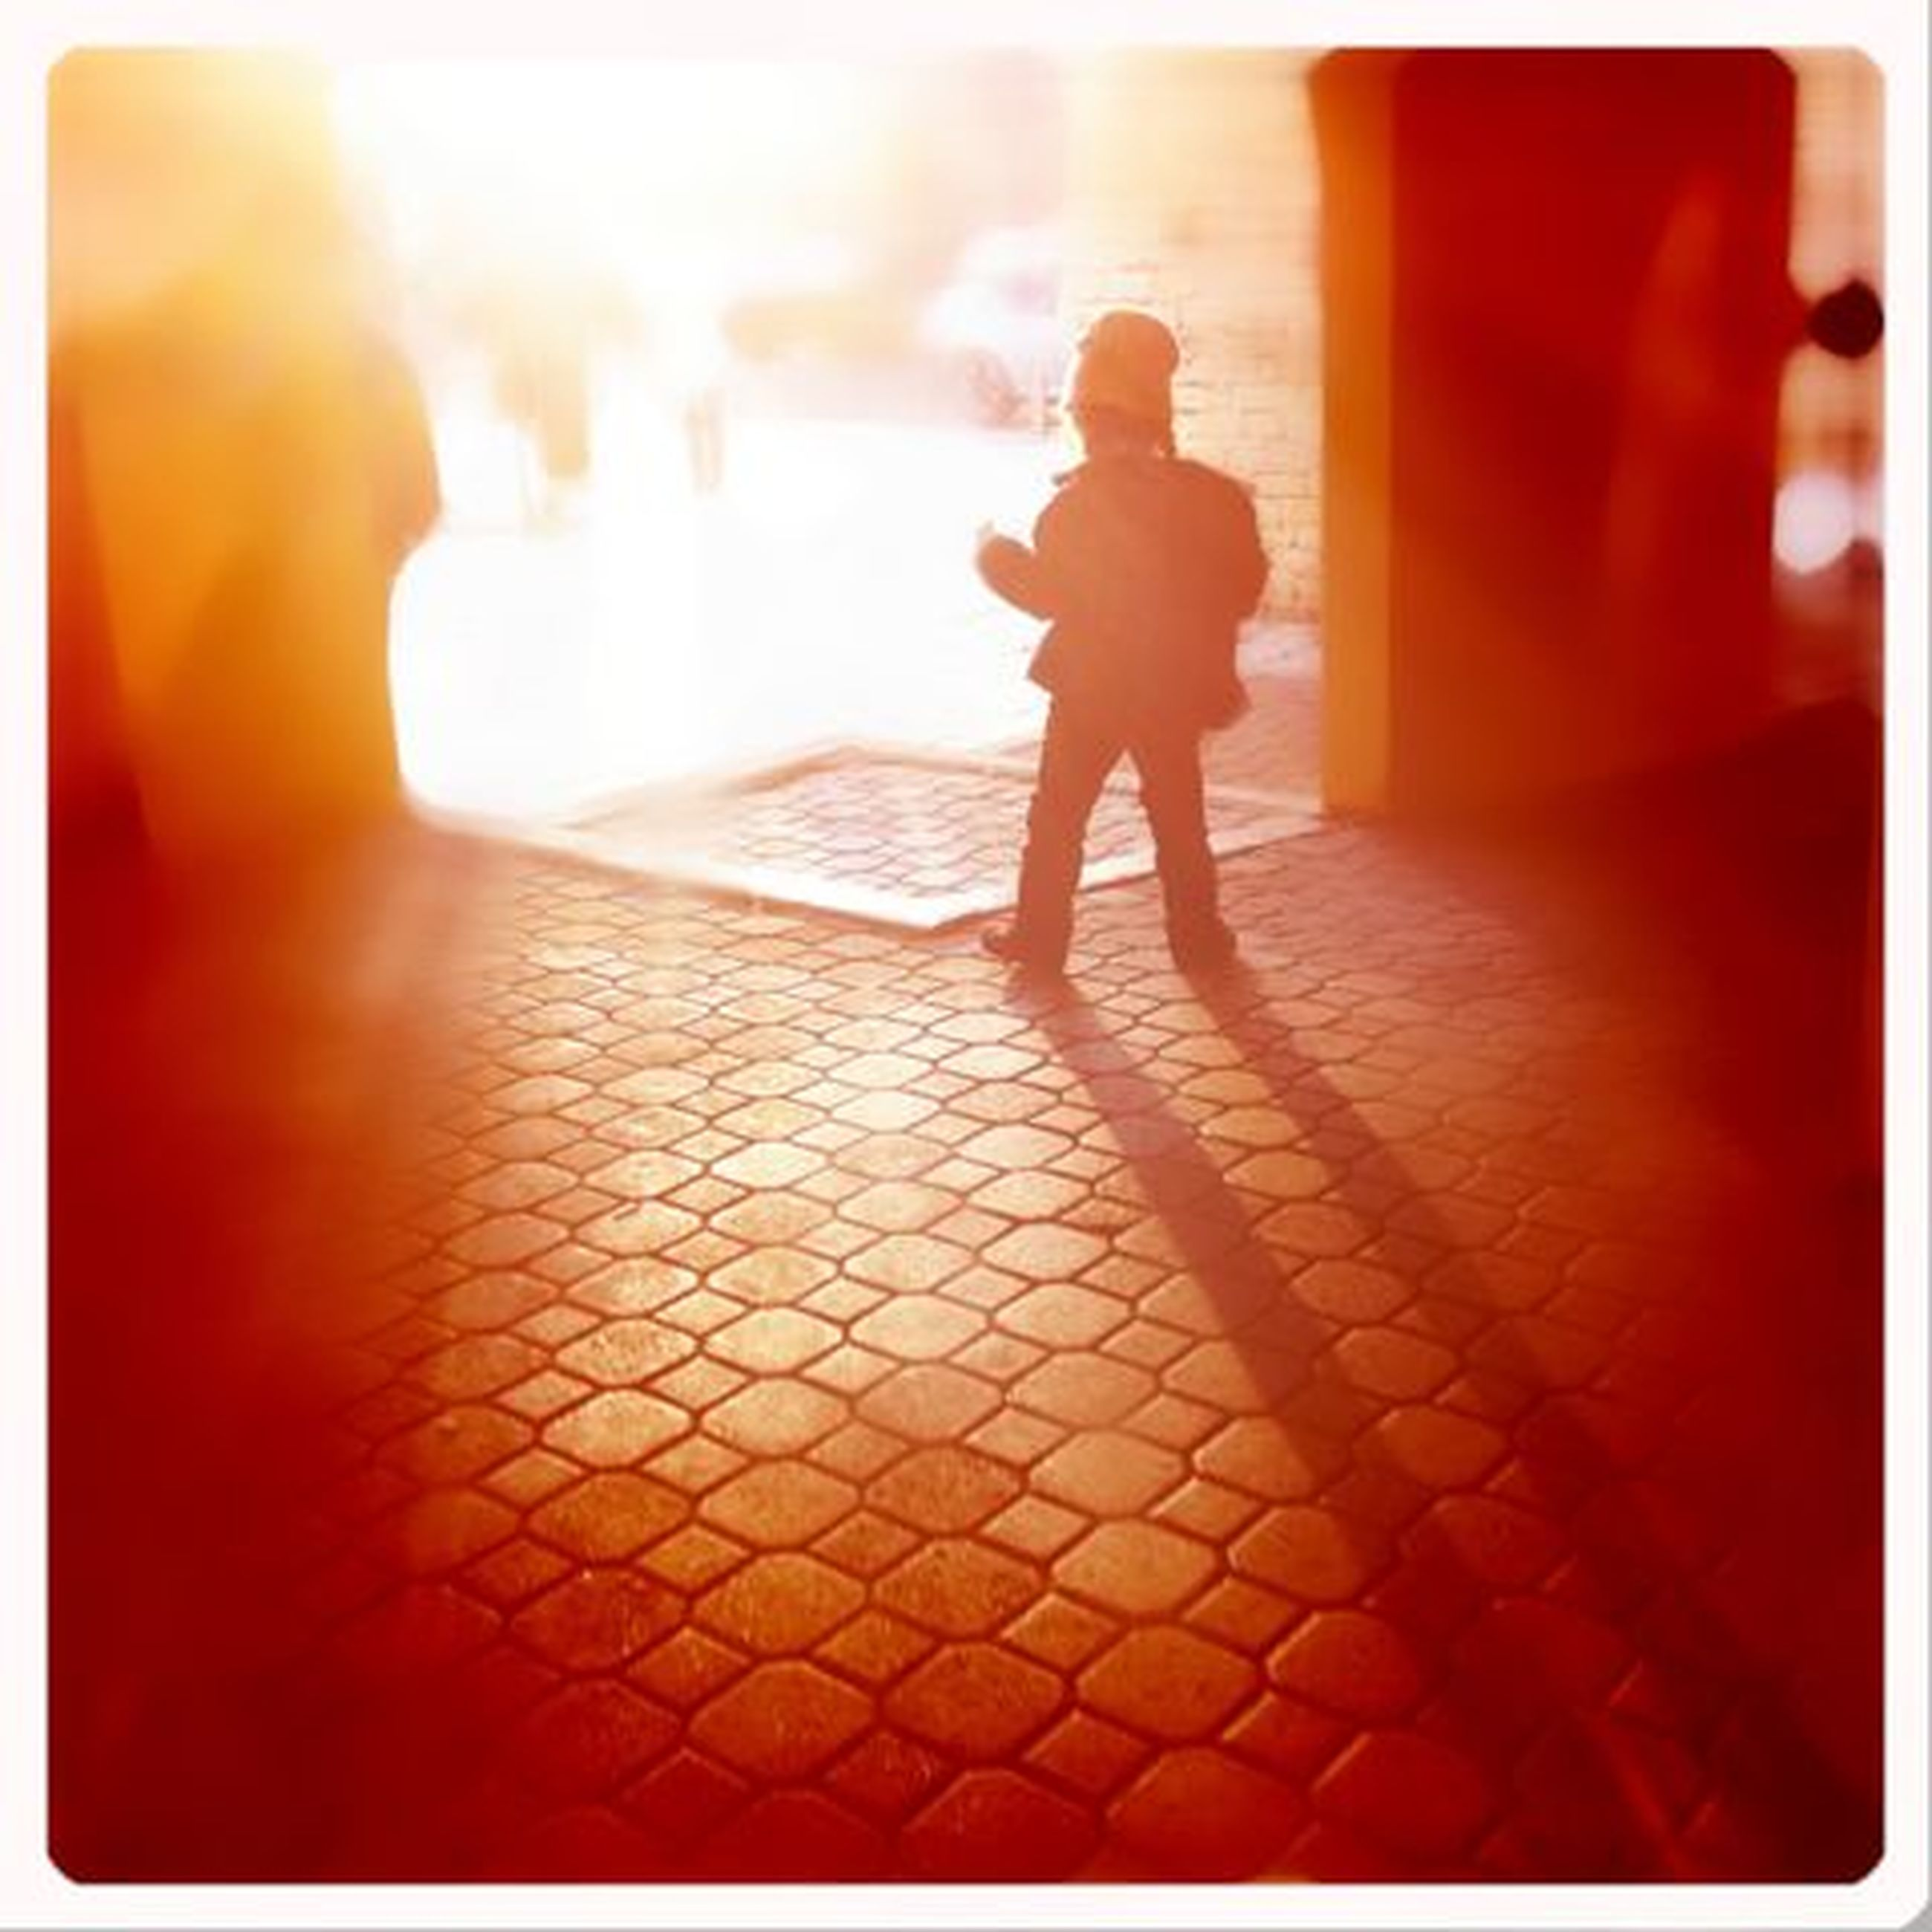 transfer print, auto post production filter, full length, lifestyles, walking, leisure activity, rear view, sunlight, men, standing, silhouette, person, shadow, childhood, street, sunset, casual clothing